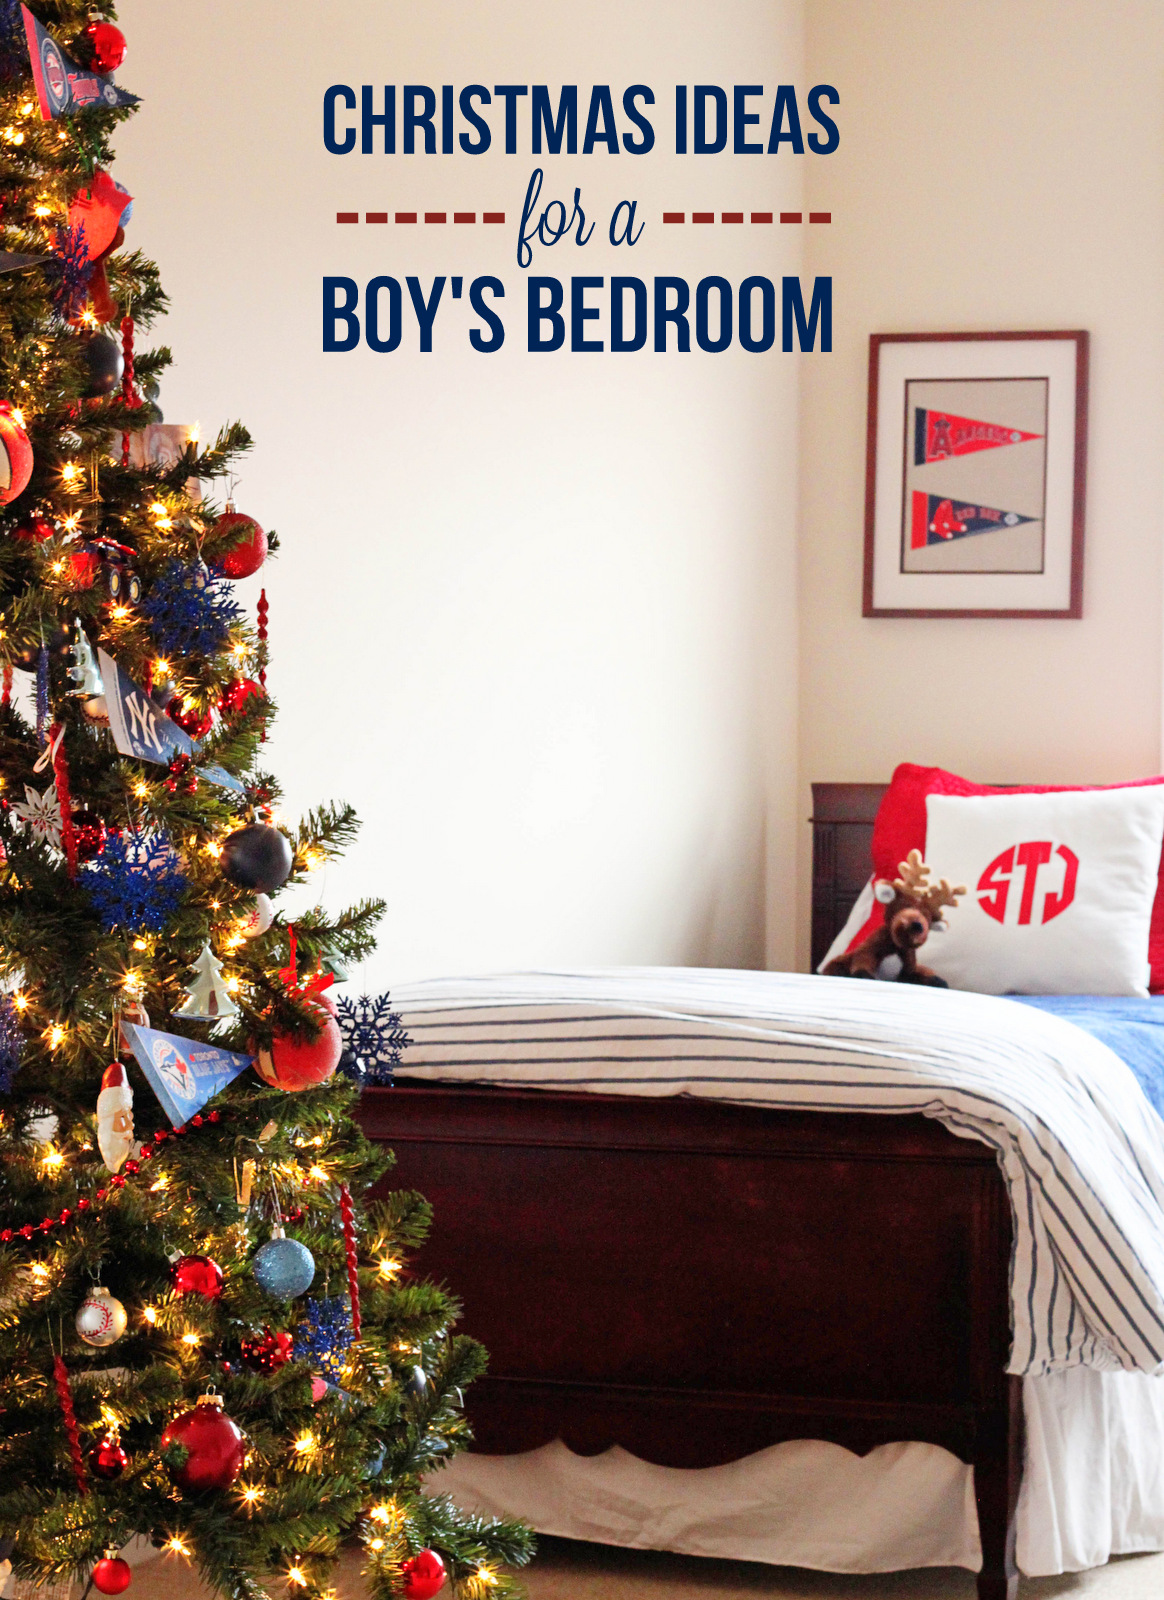 Holidays} Boy\'s Bedroom Christmas Ideas - Mirabelle Creations